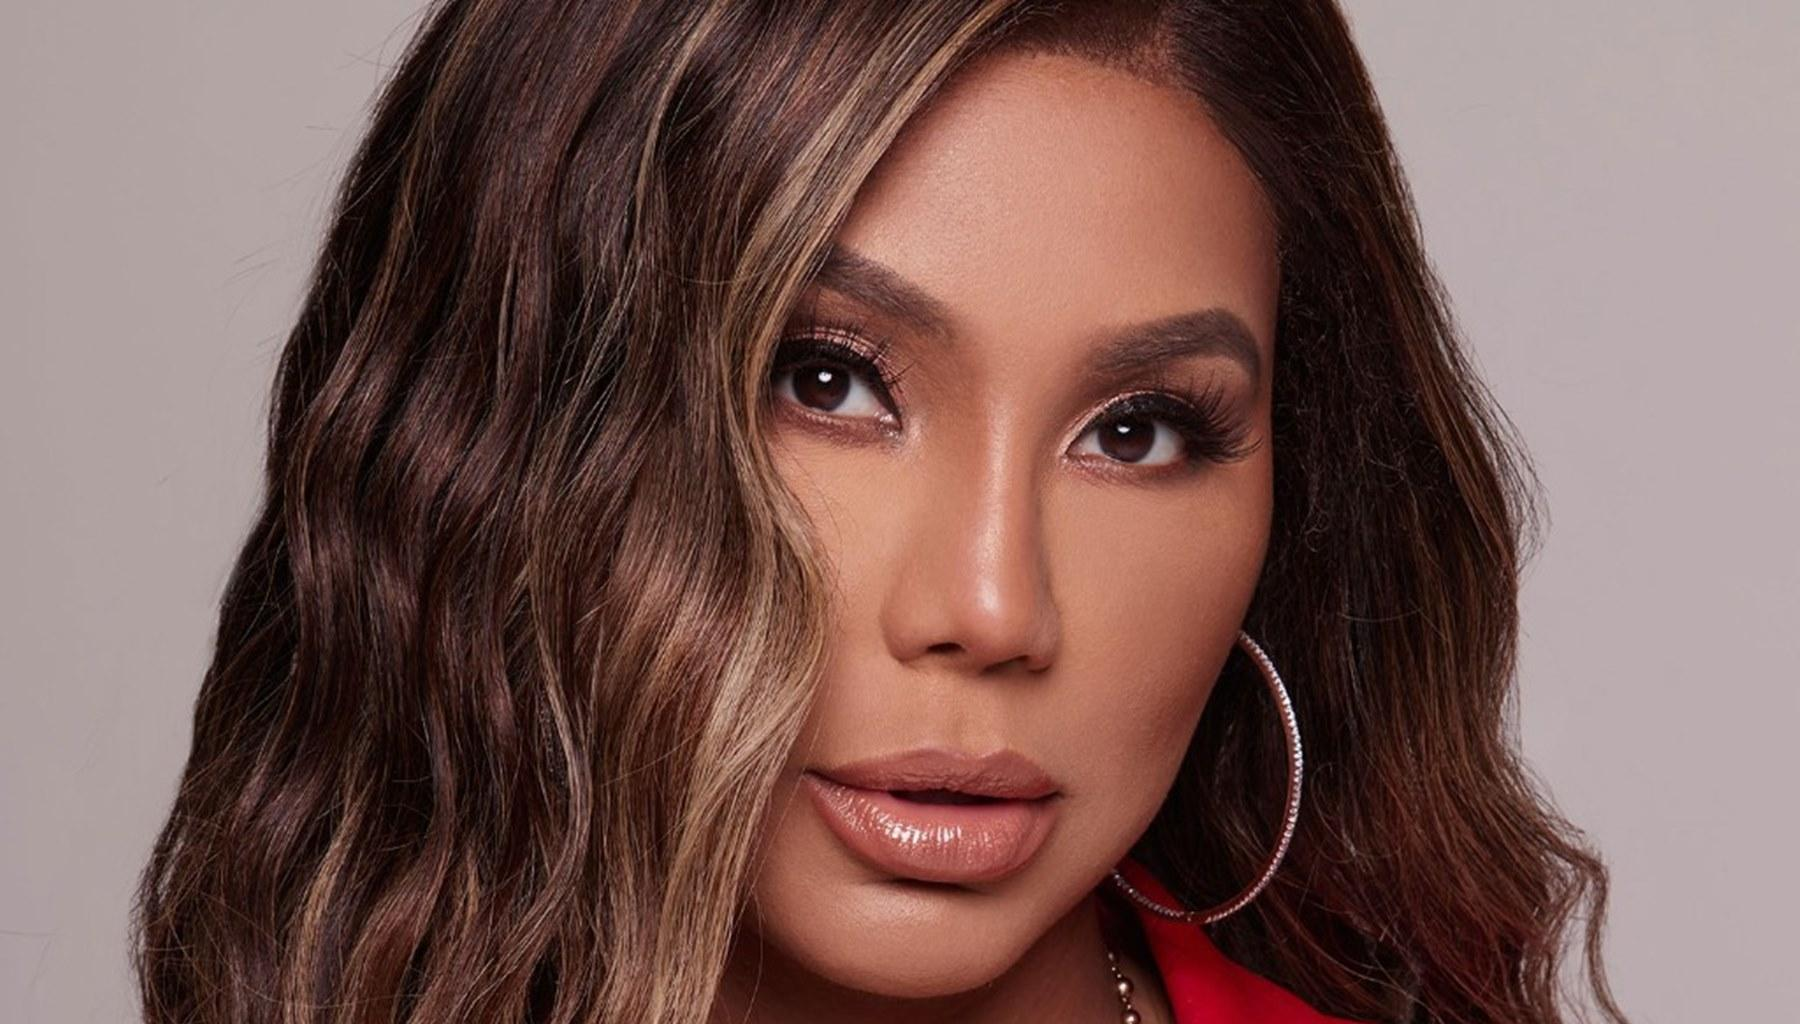 Tamar Braxton Is Hopeful In These Dark Times Thanks To These Two Wonderful Young Men